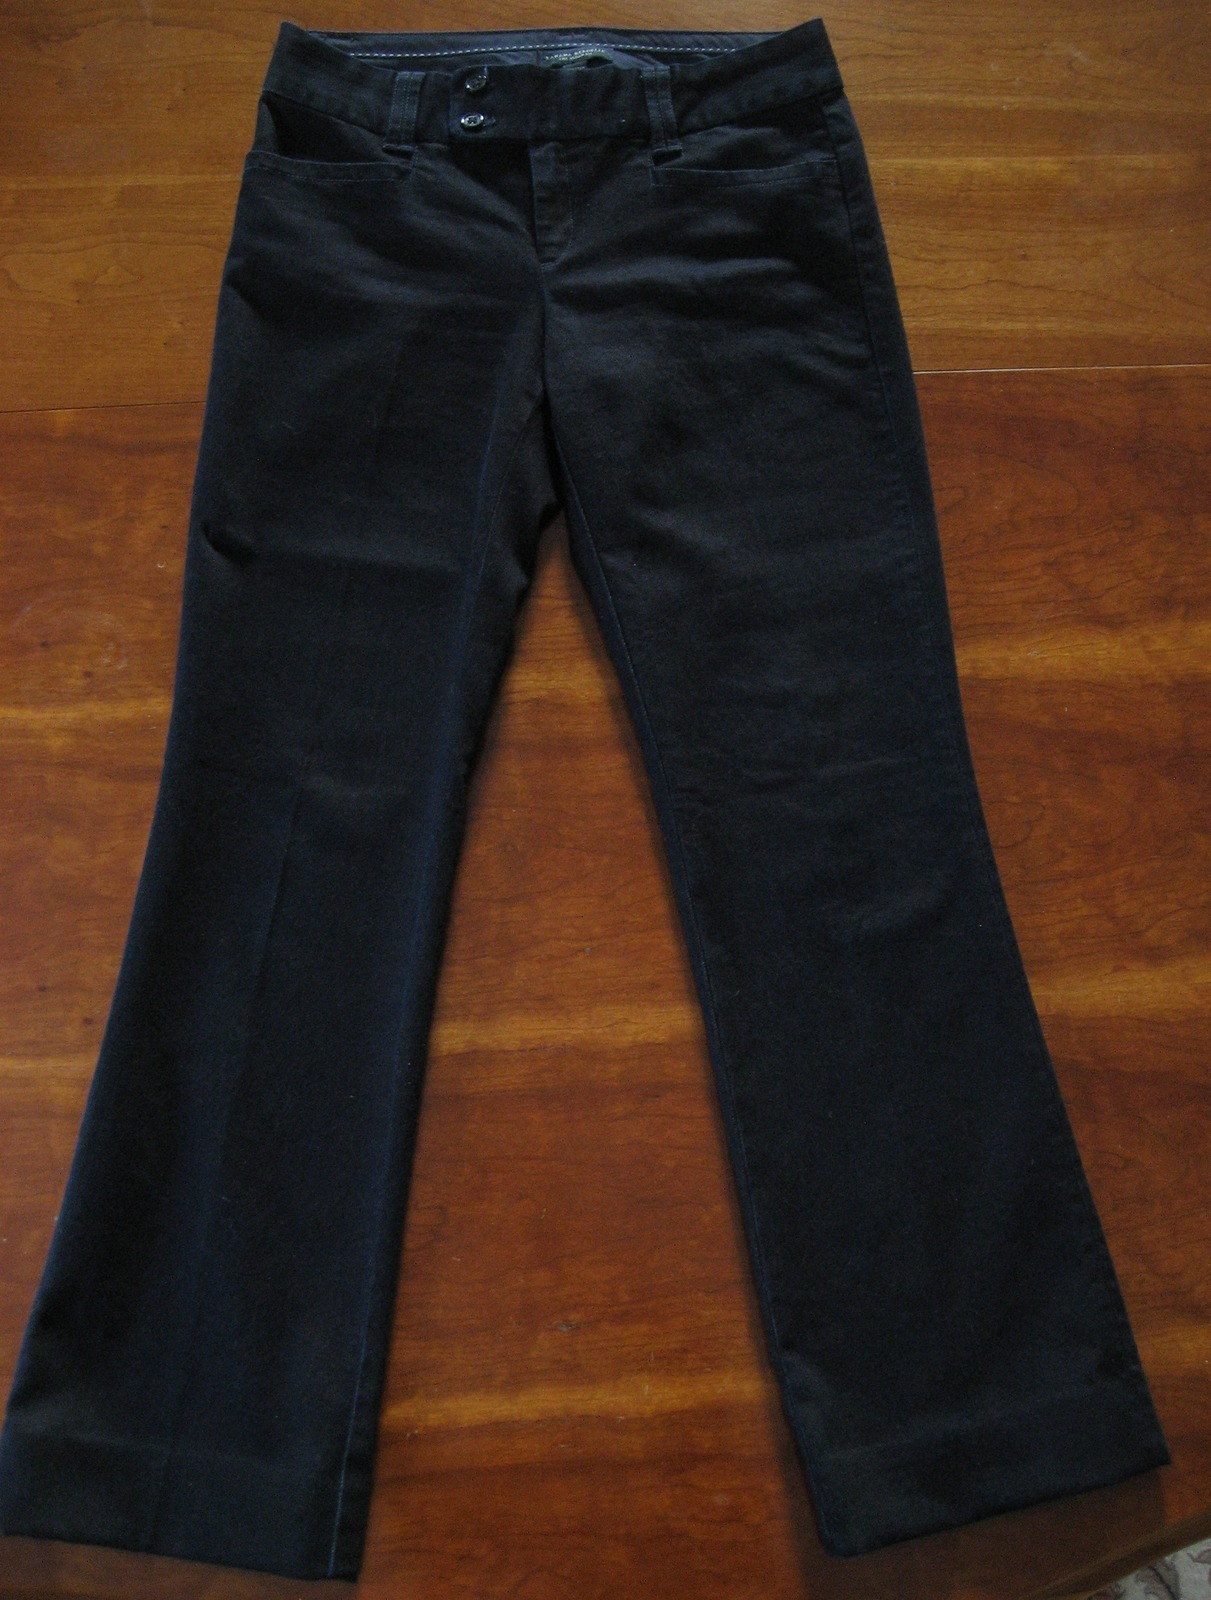 Primary image for Banana Republic Trouser Style Dark Wash Jeans, Sloan Fit Flare, Size 4